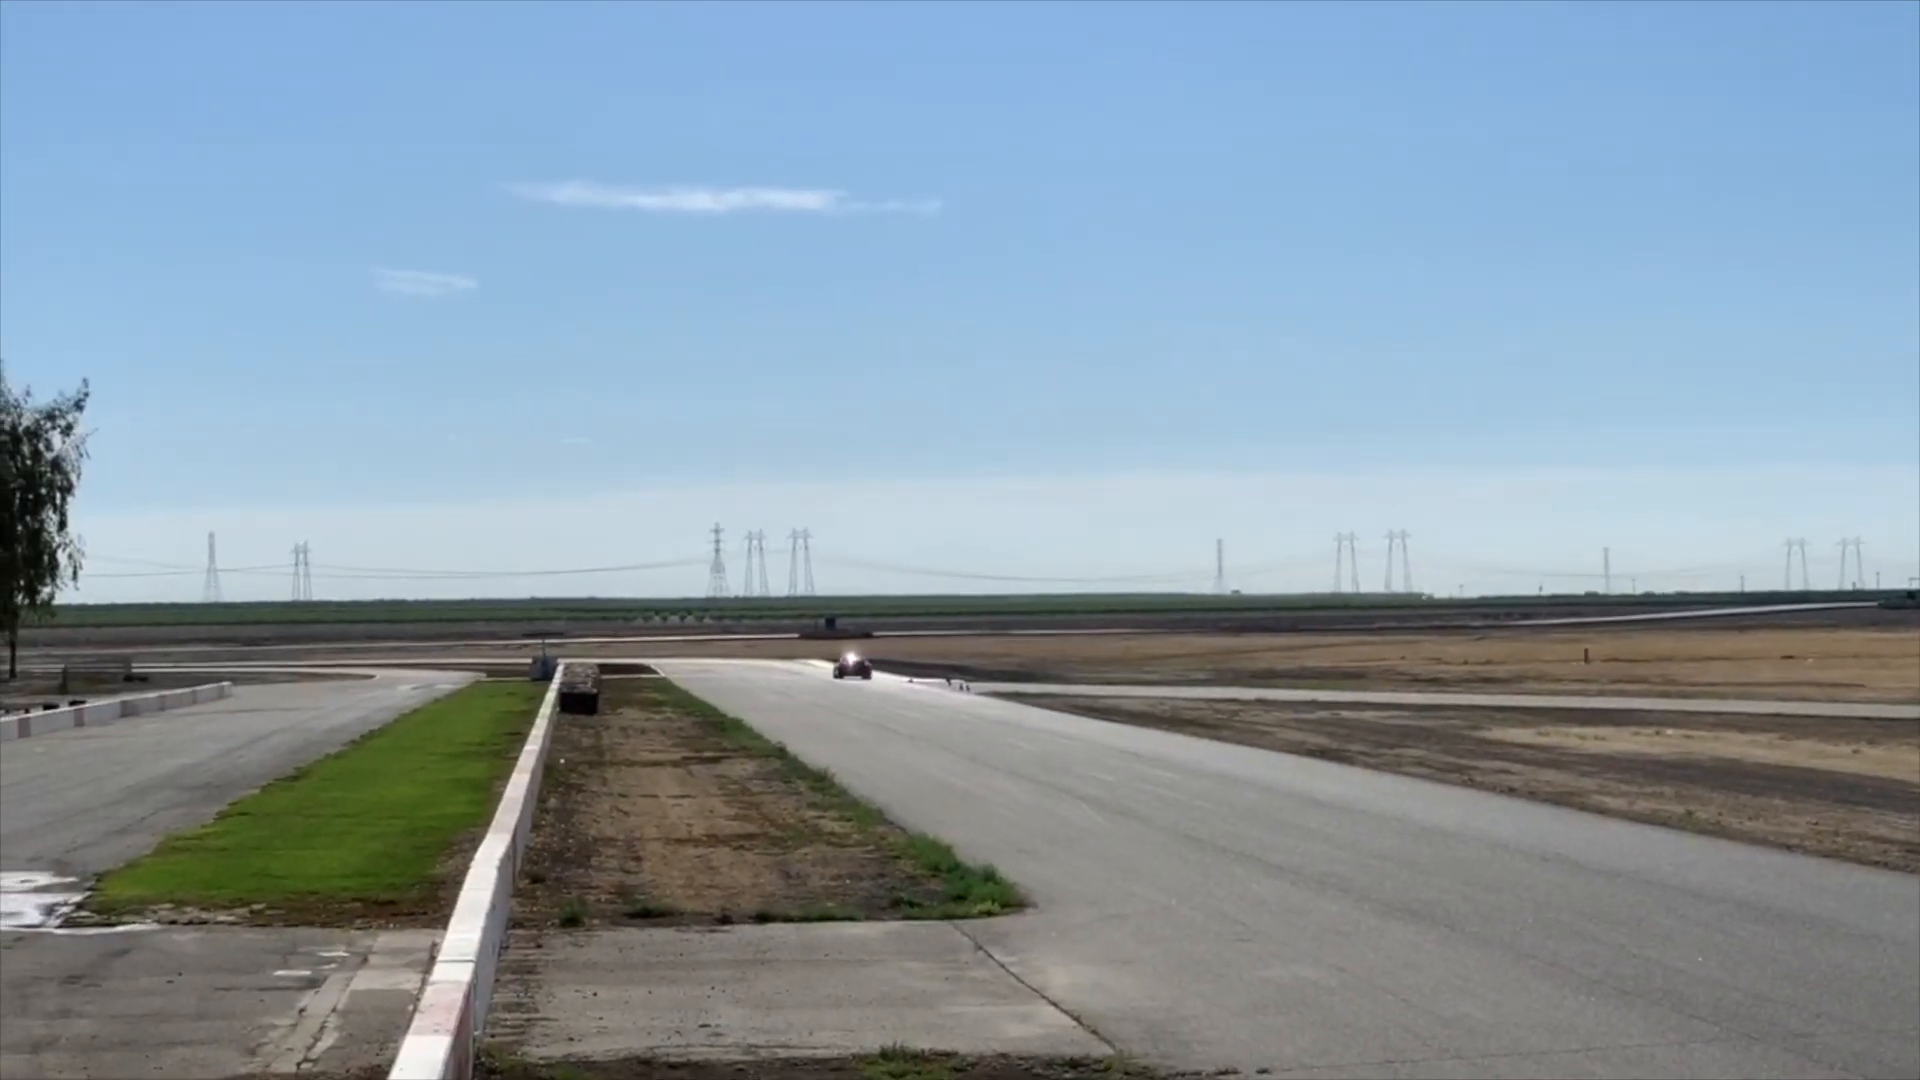 Buttonwillow Configuration 13 lap times